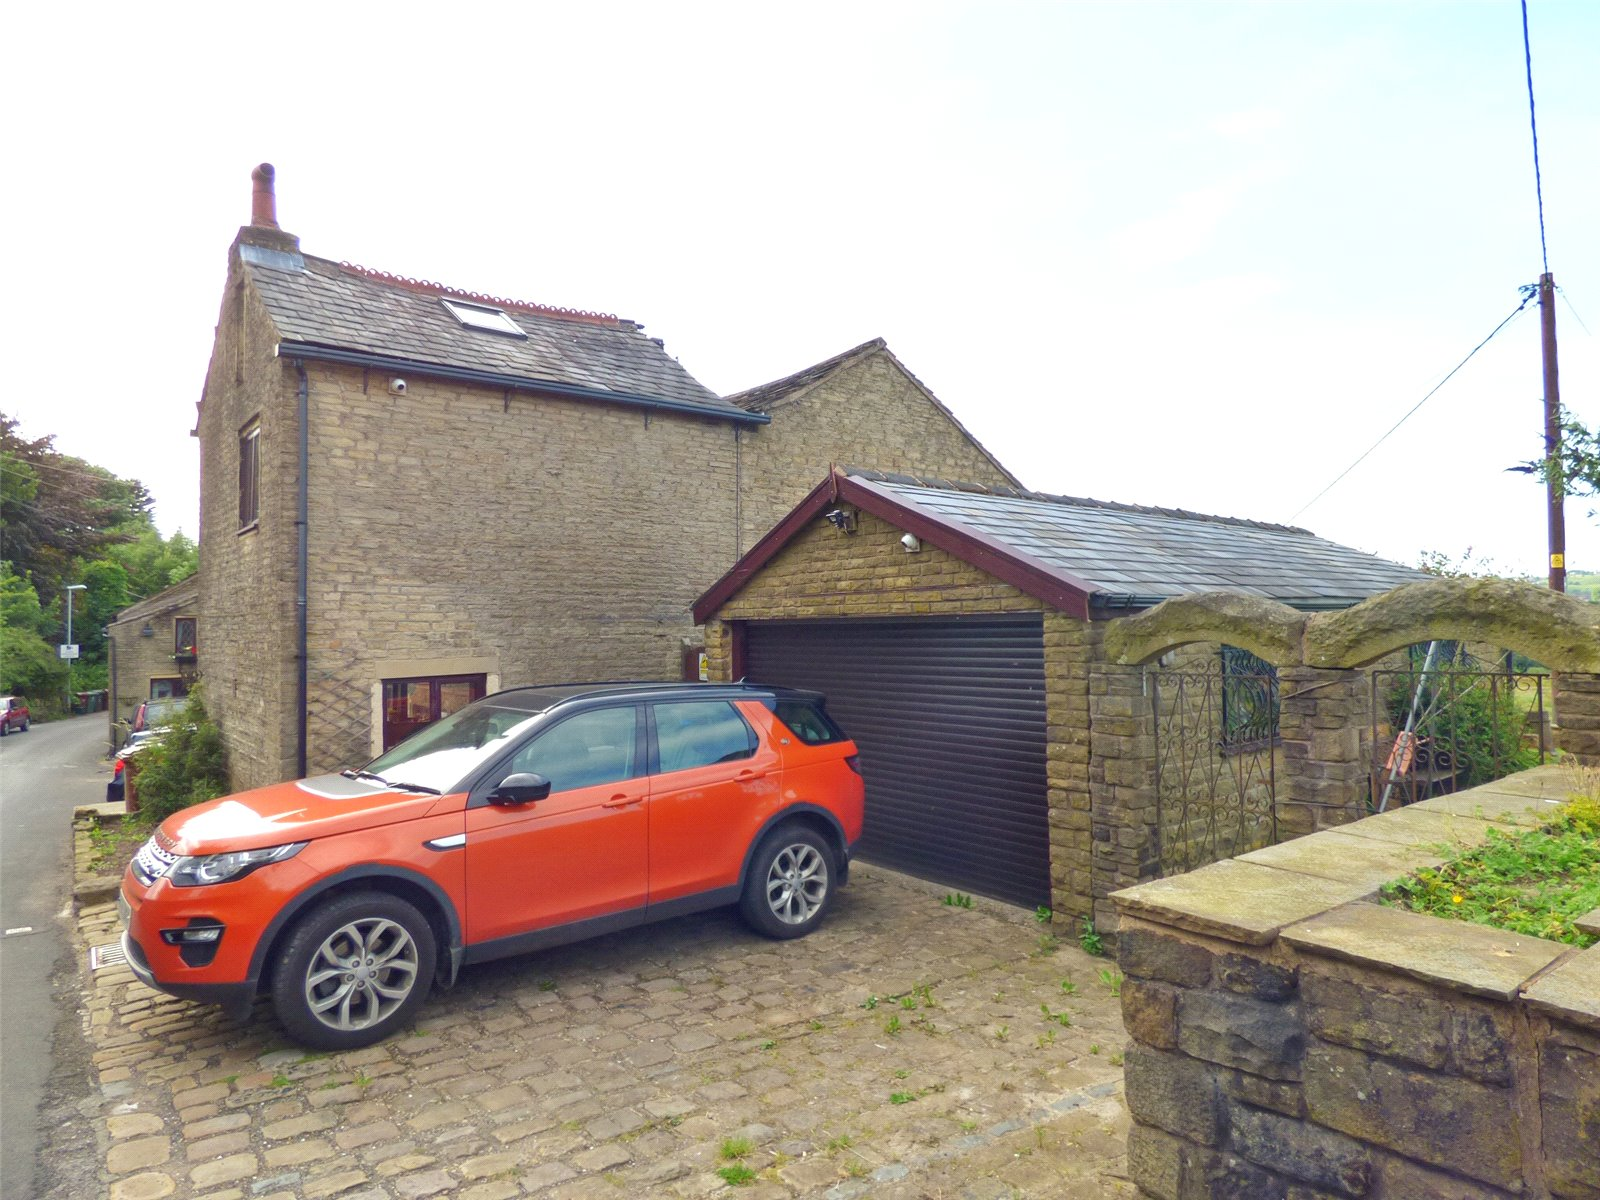 3 Bedrooms End Of Terrace House for sale in Flash Cottages, Knowles Lane, Lees, Oldham, OL4